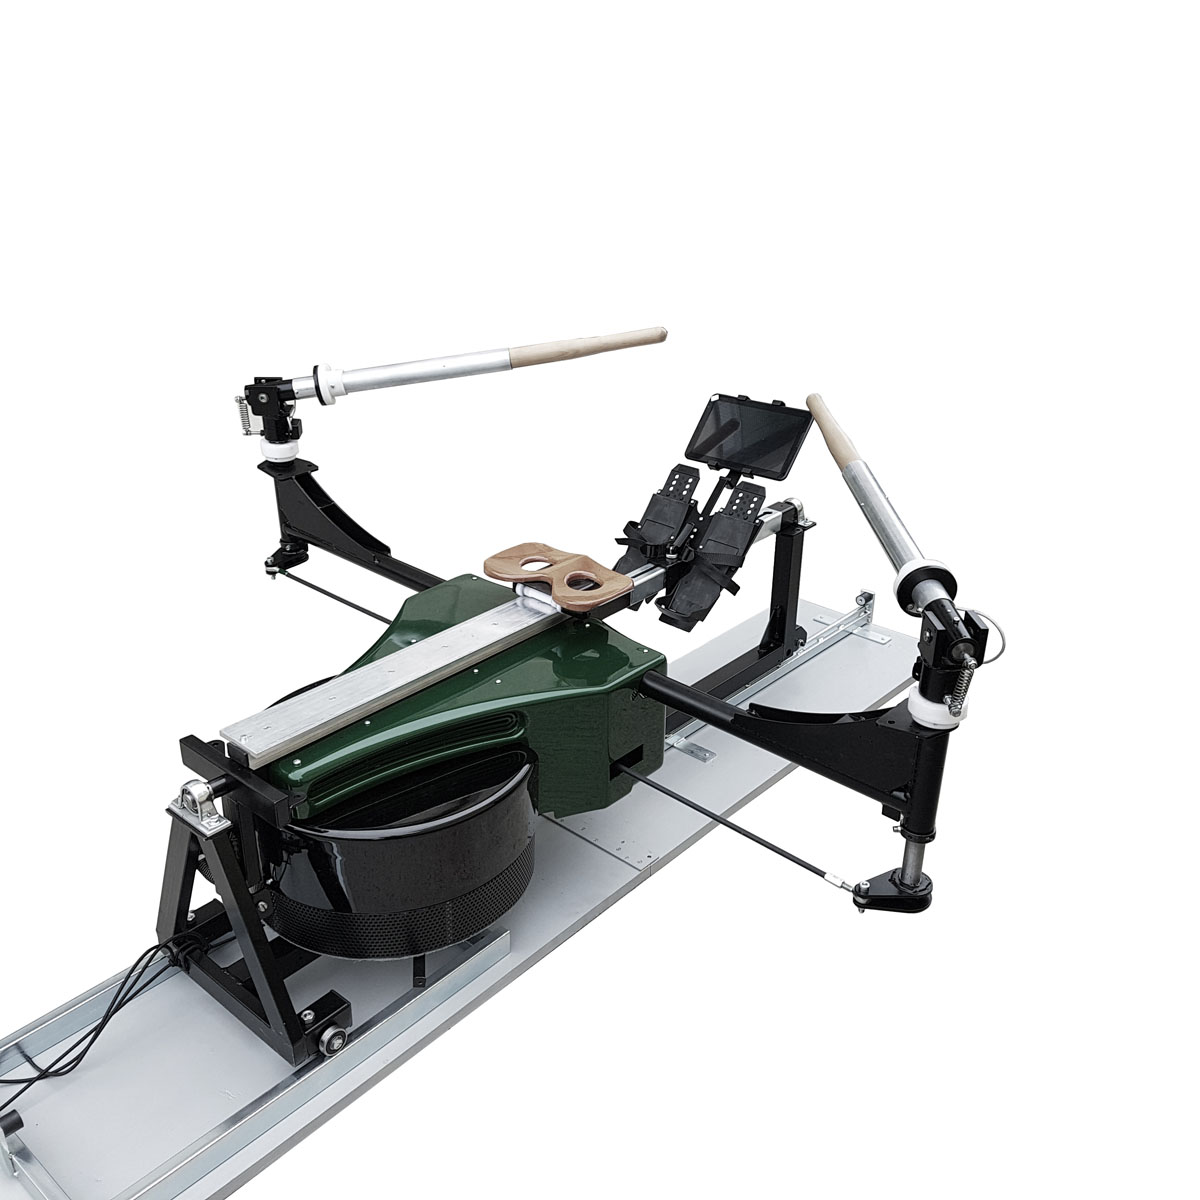 The Biorower S1pro for sculling and sweep rowing. Made for professionals.